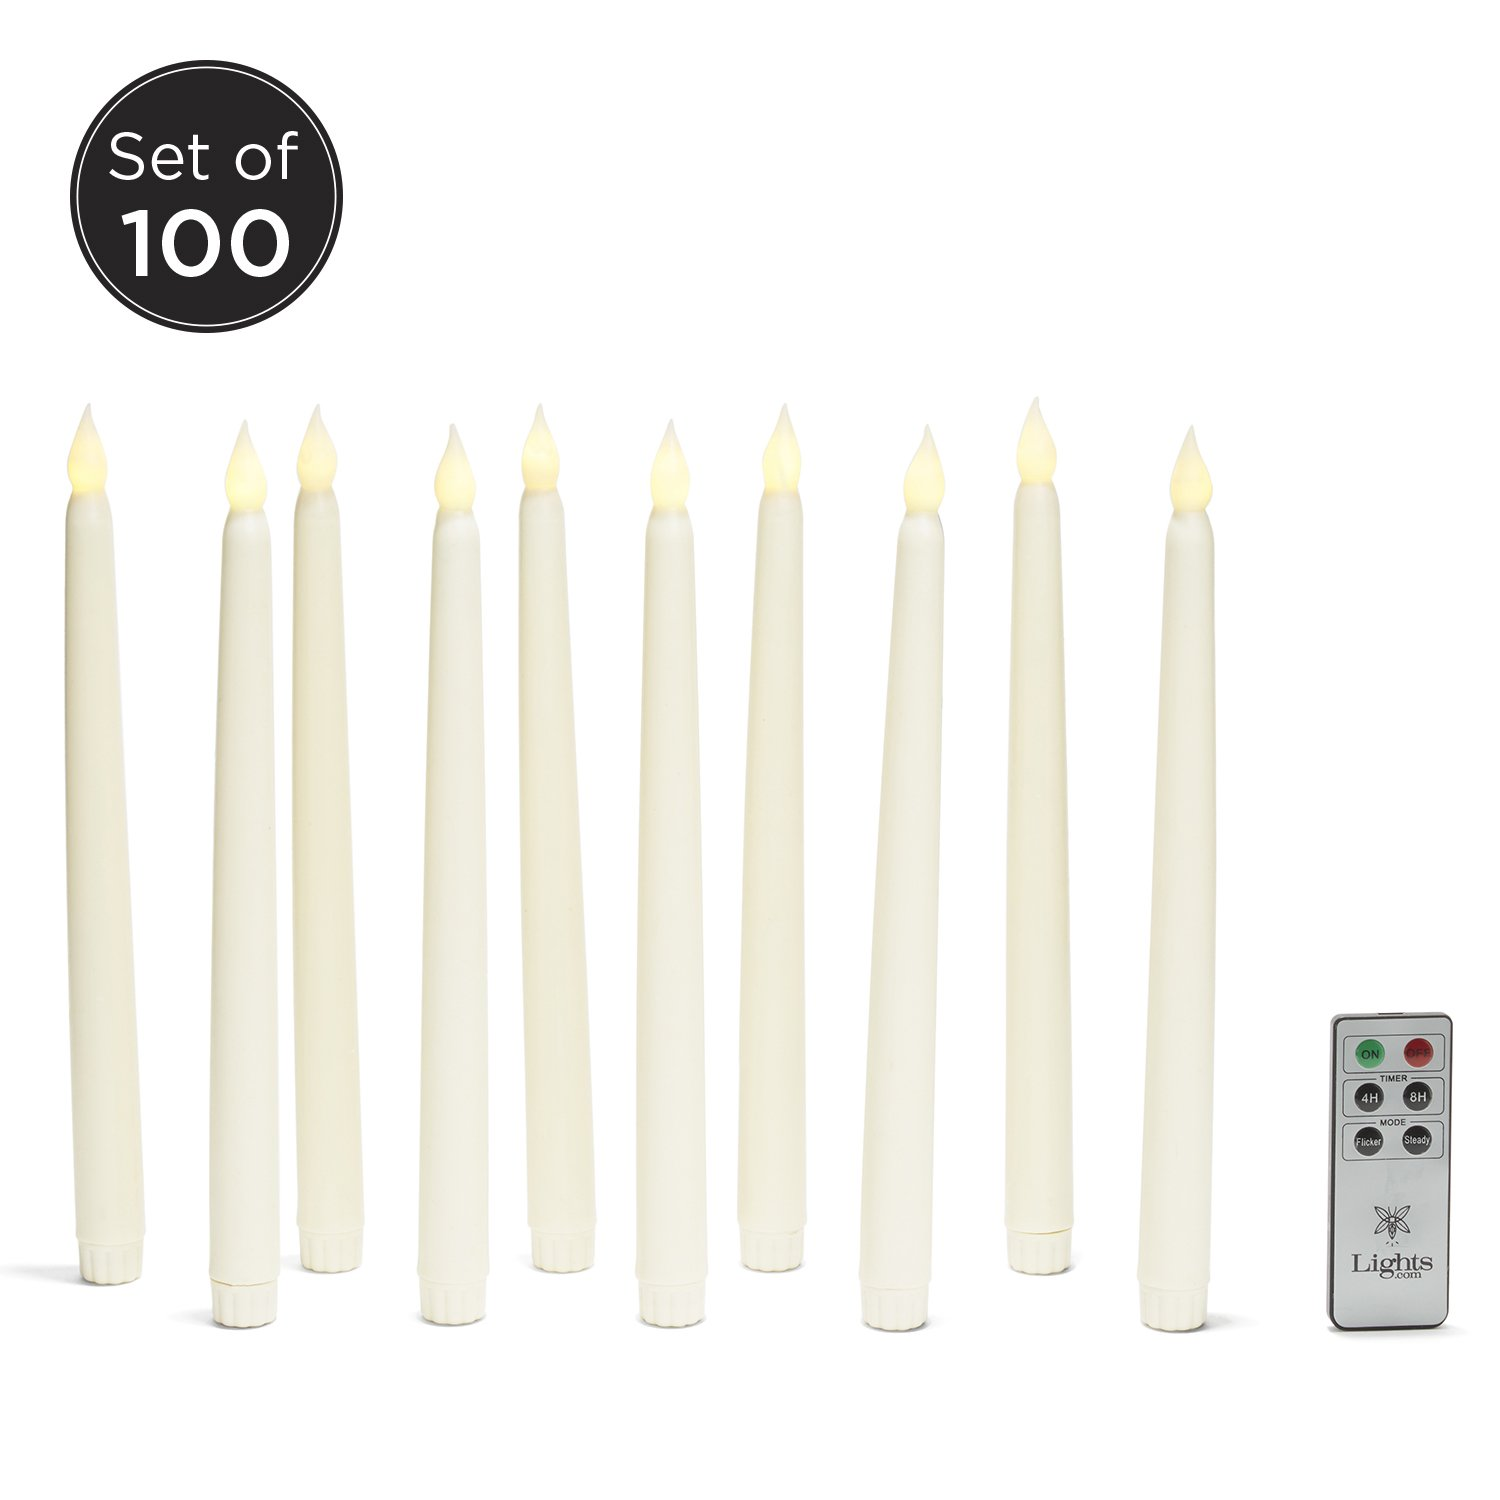 Set of 100 Smooth Ivory 10'' Realistic Flameless Wax Vigil Taper Candles with Warm White Bright LEDs, Batteries Included- BULK VALUE SET!